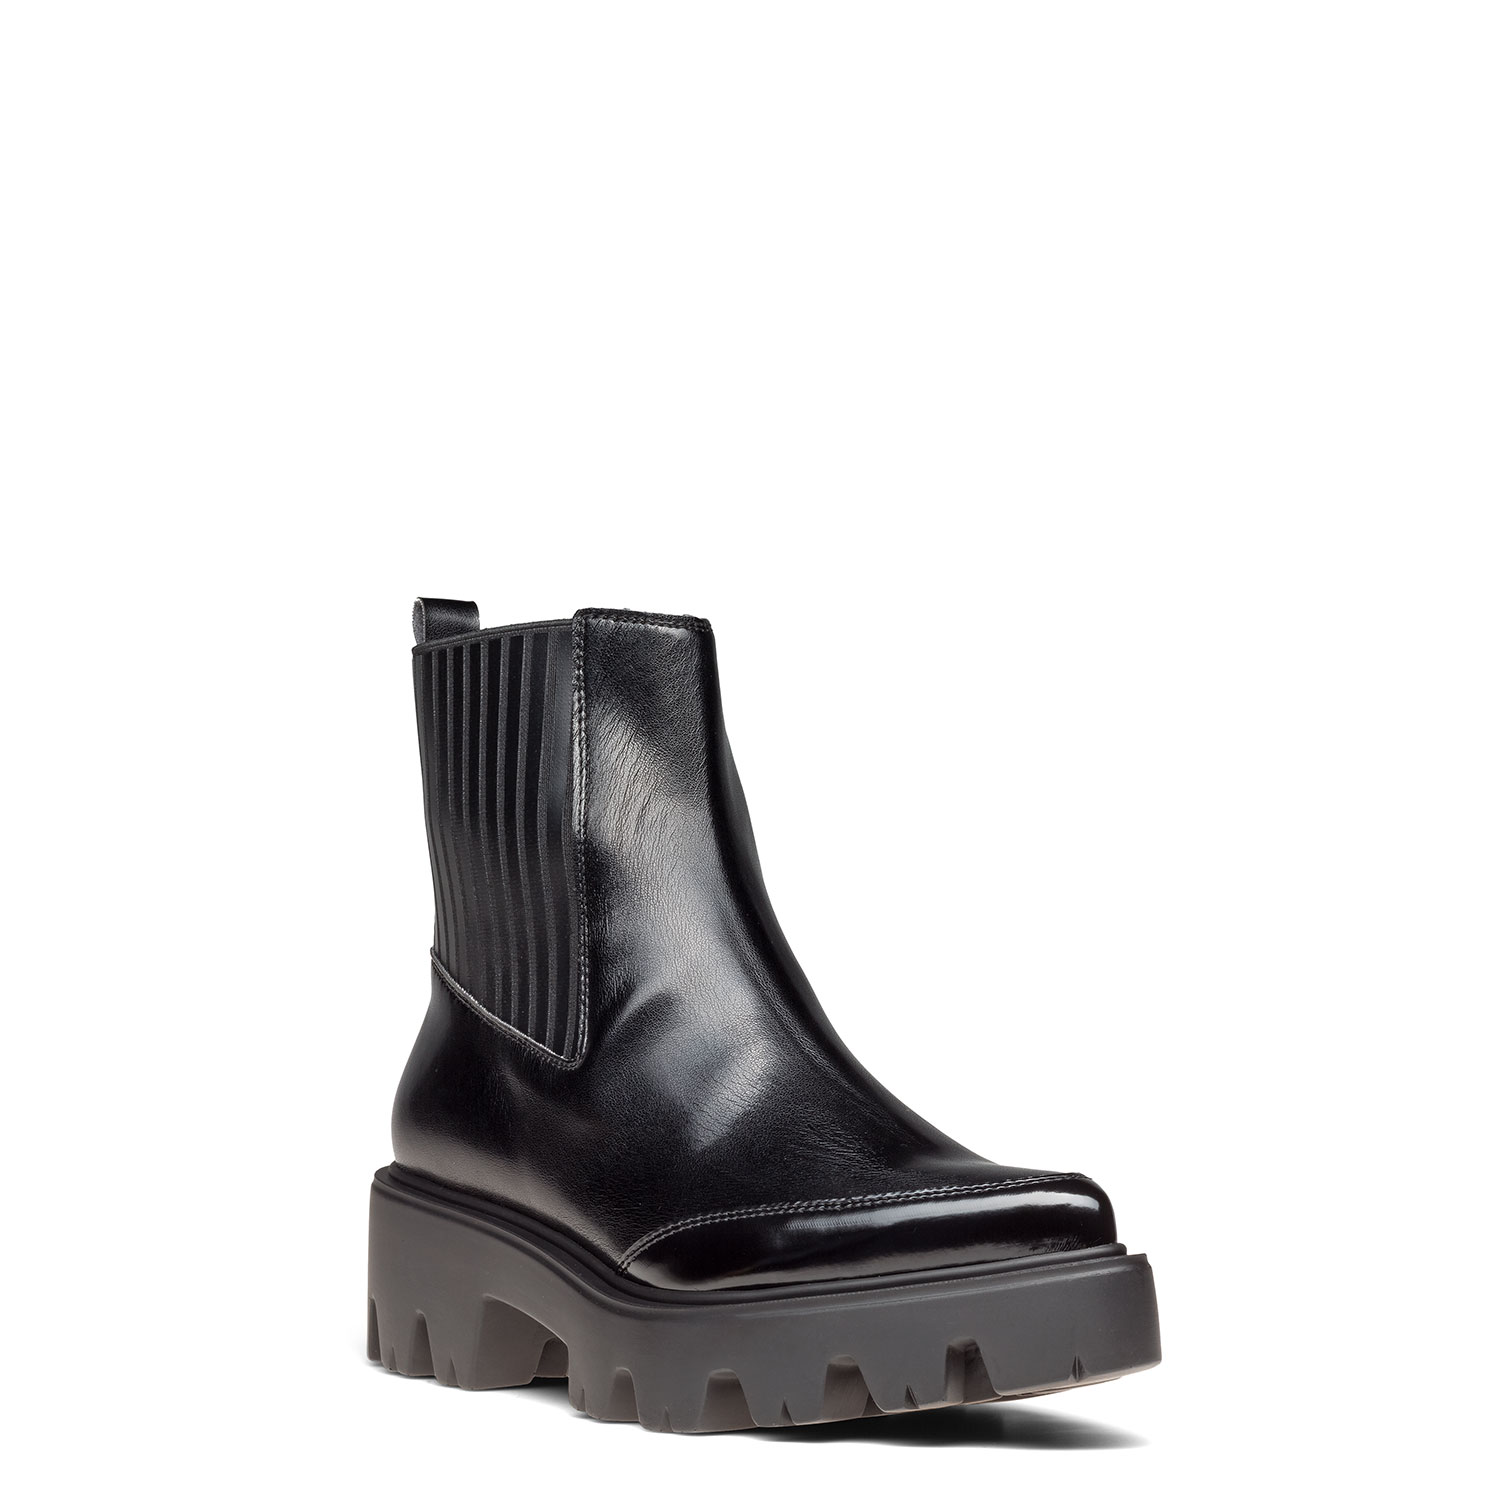 Women's ankle boots CARLO PAZOLINI AS-RES3-1